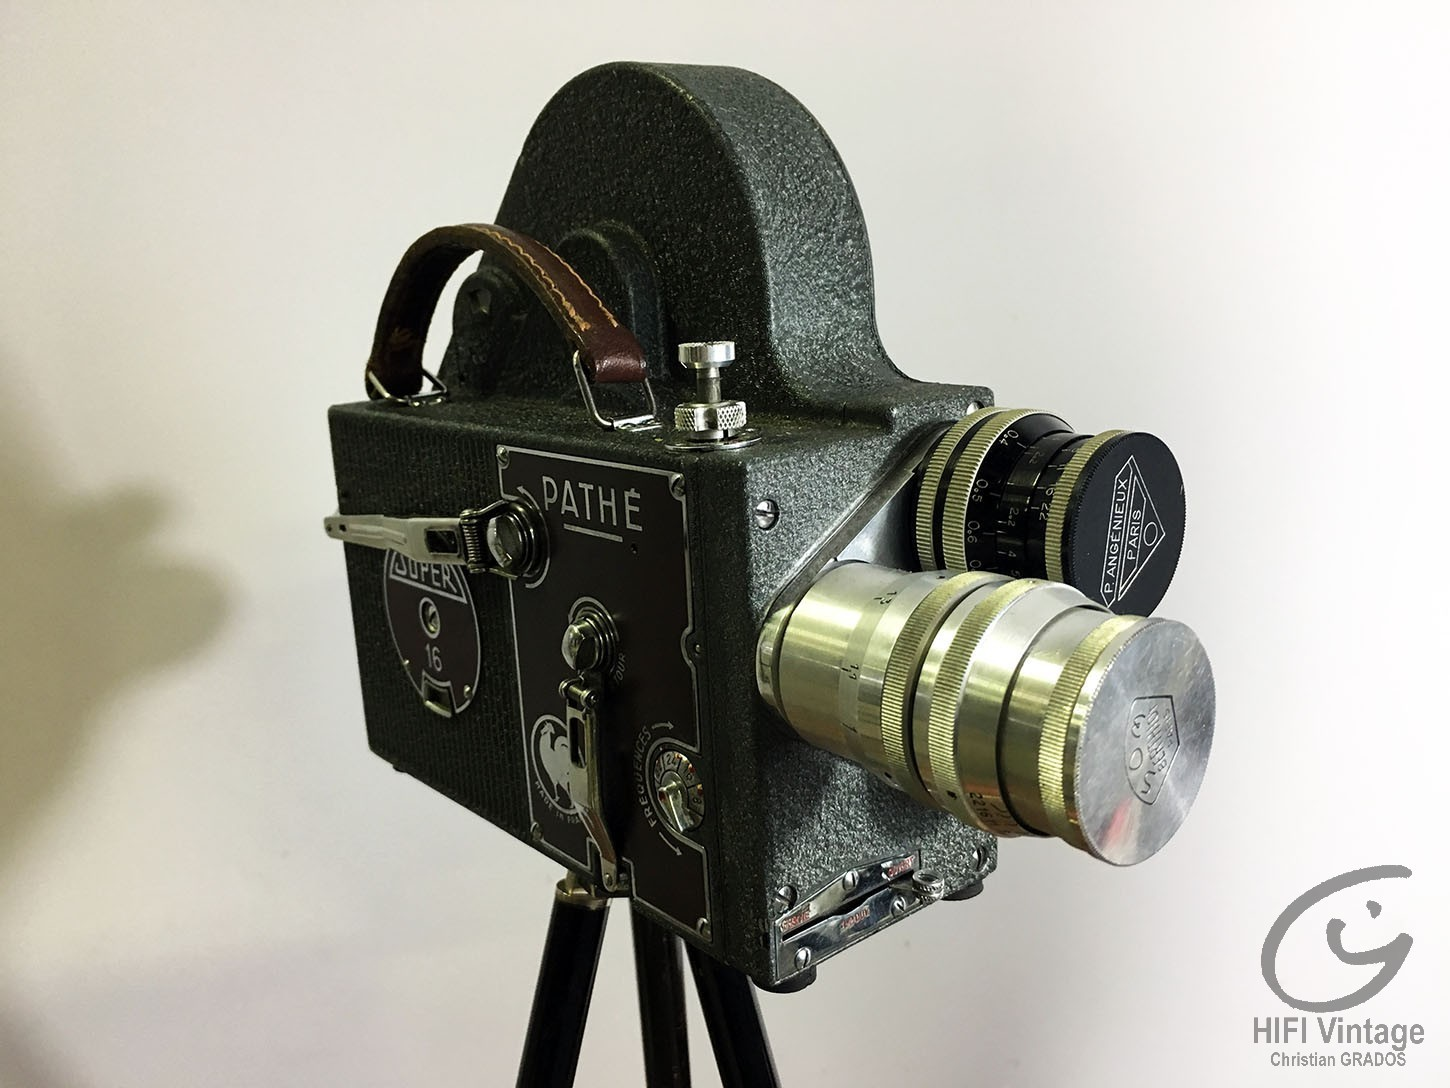 PATHE Webo Super-16